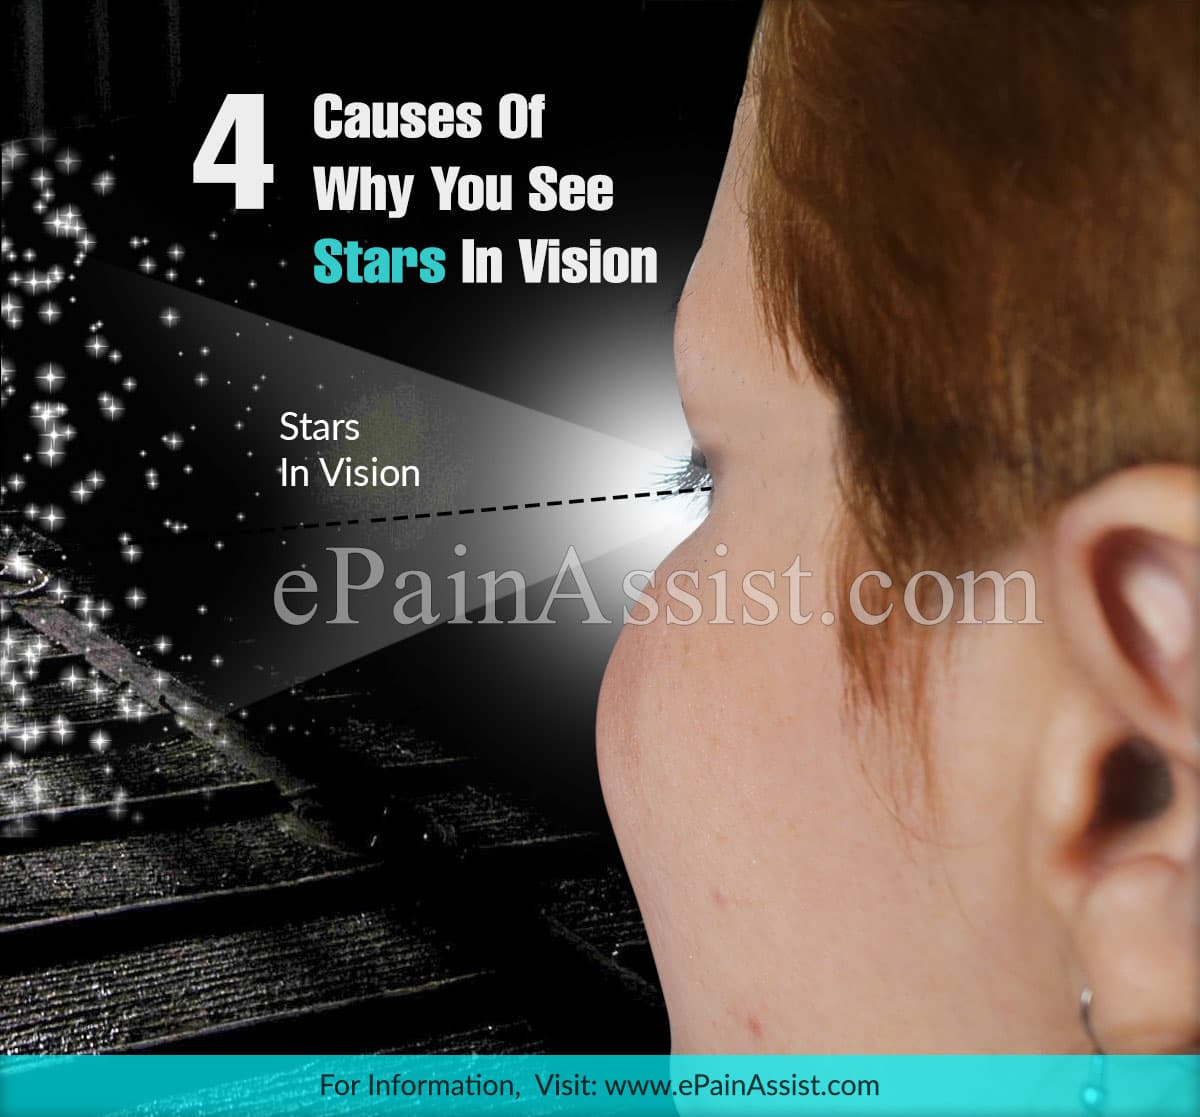 4 Causes Of Why You See Stars In Vision